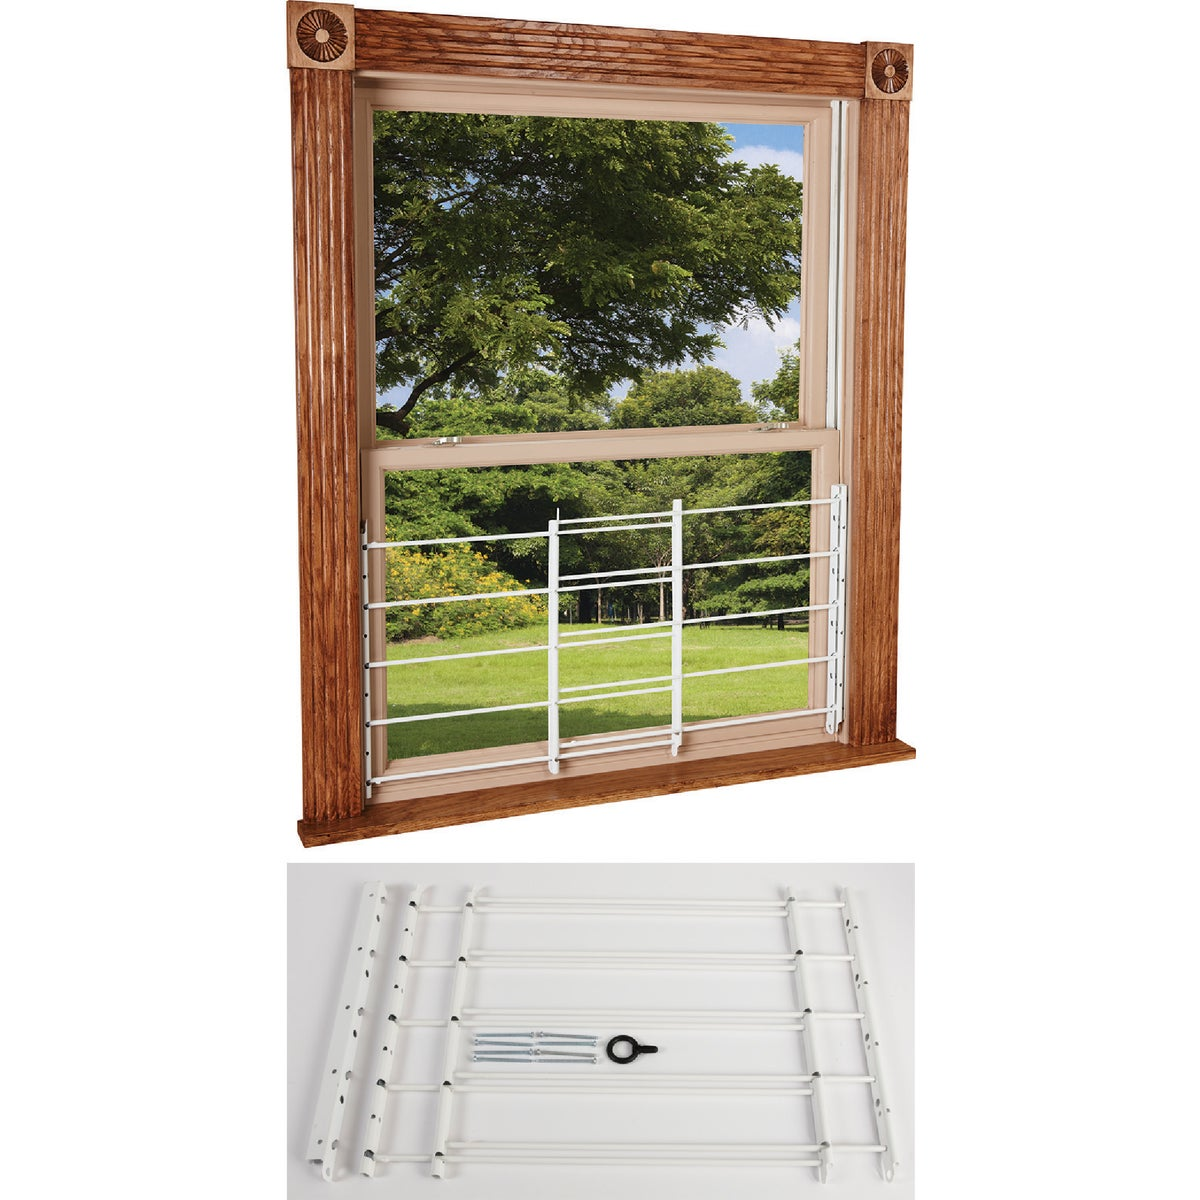 5-BAR WINDOW GUARD